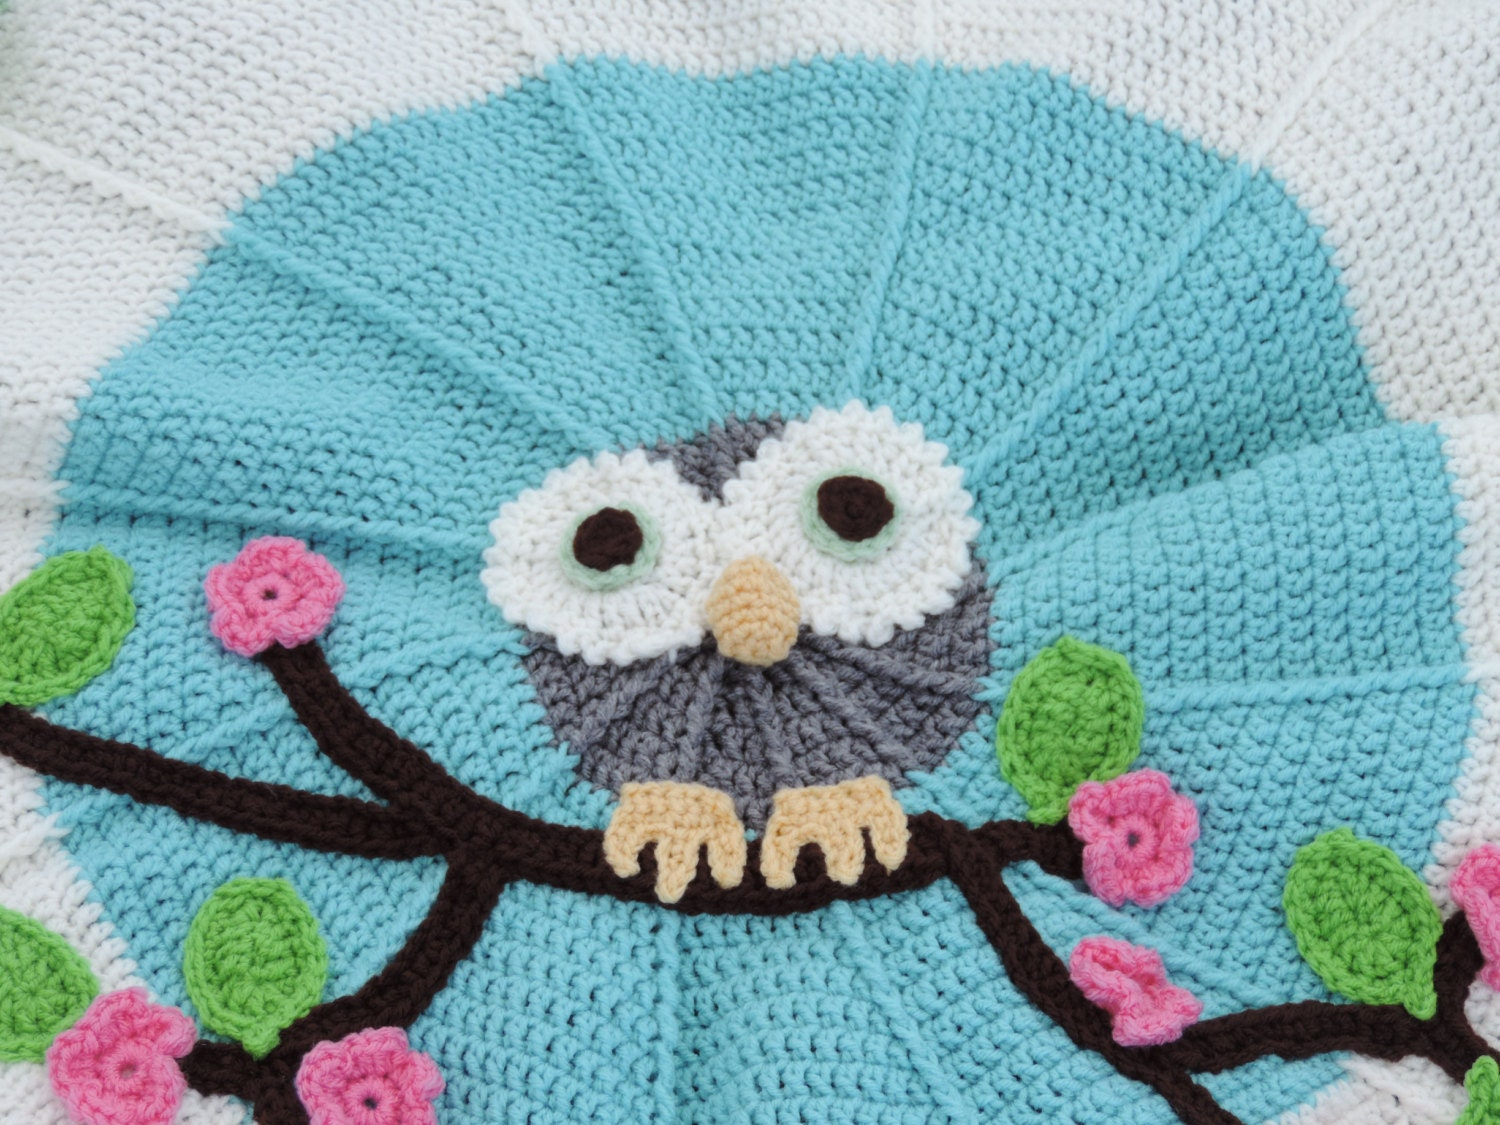 Crochet Owl Blanket : Crochet Baby Owl Blanket by EllieJaneShop on Etsy